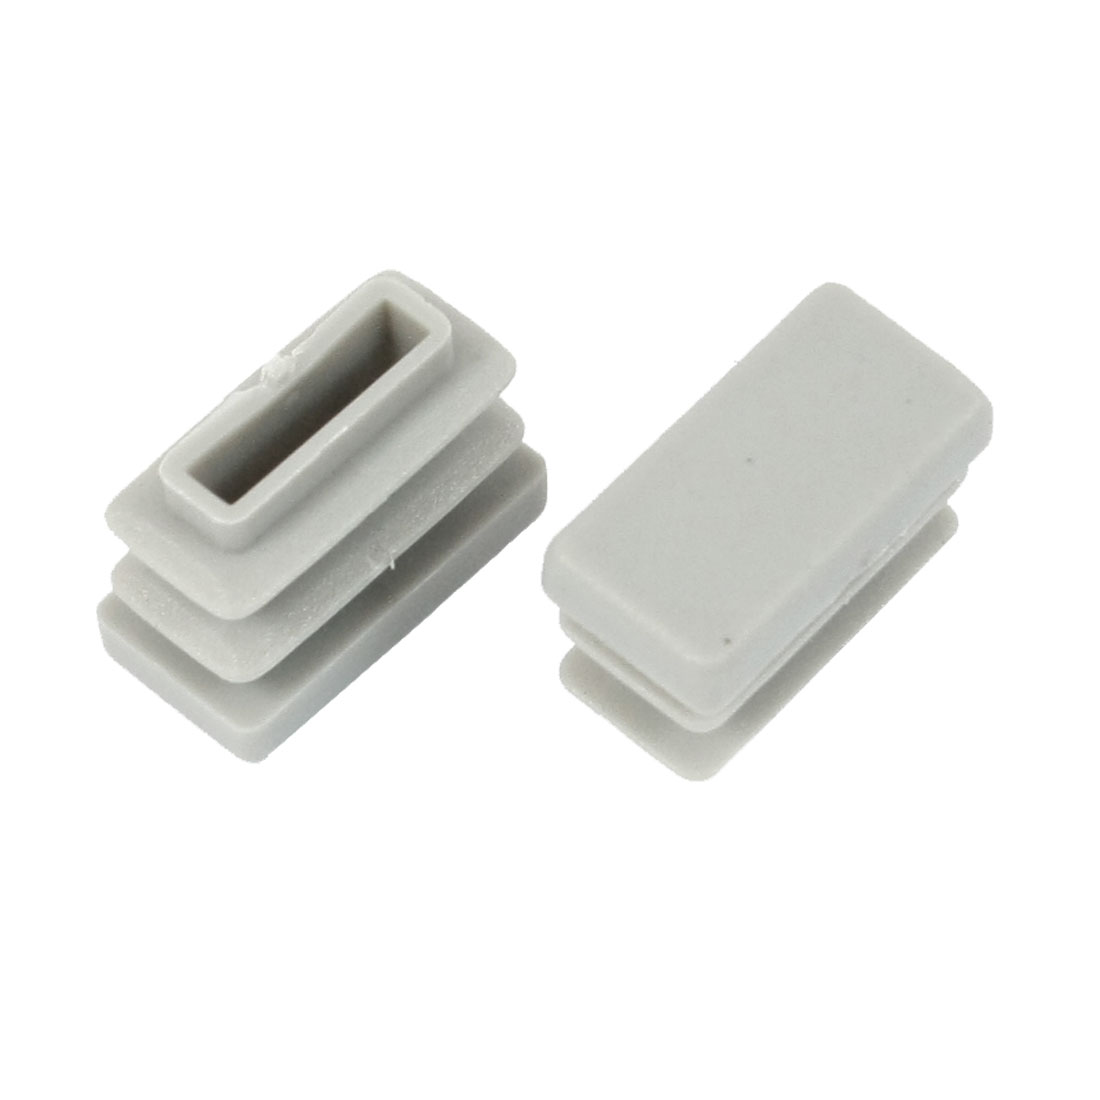 2 Pcs 10mm x 20mm Plastic Blanking End Caps Rectangle Tubing Tube Insert Gray